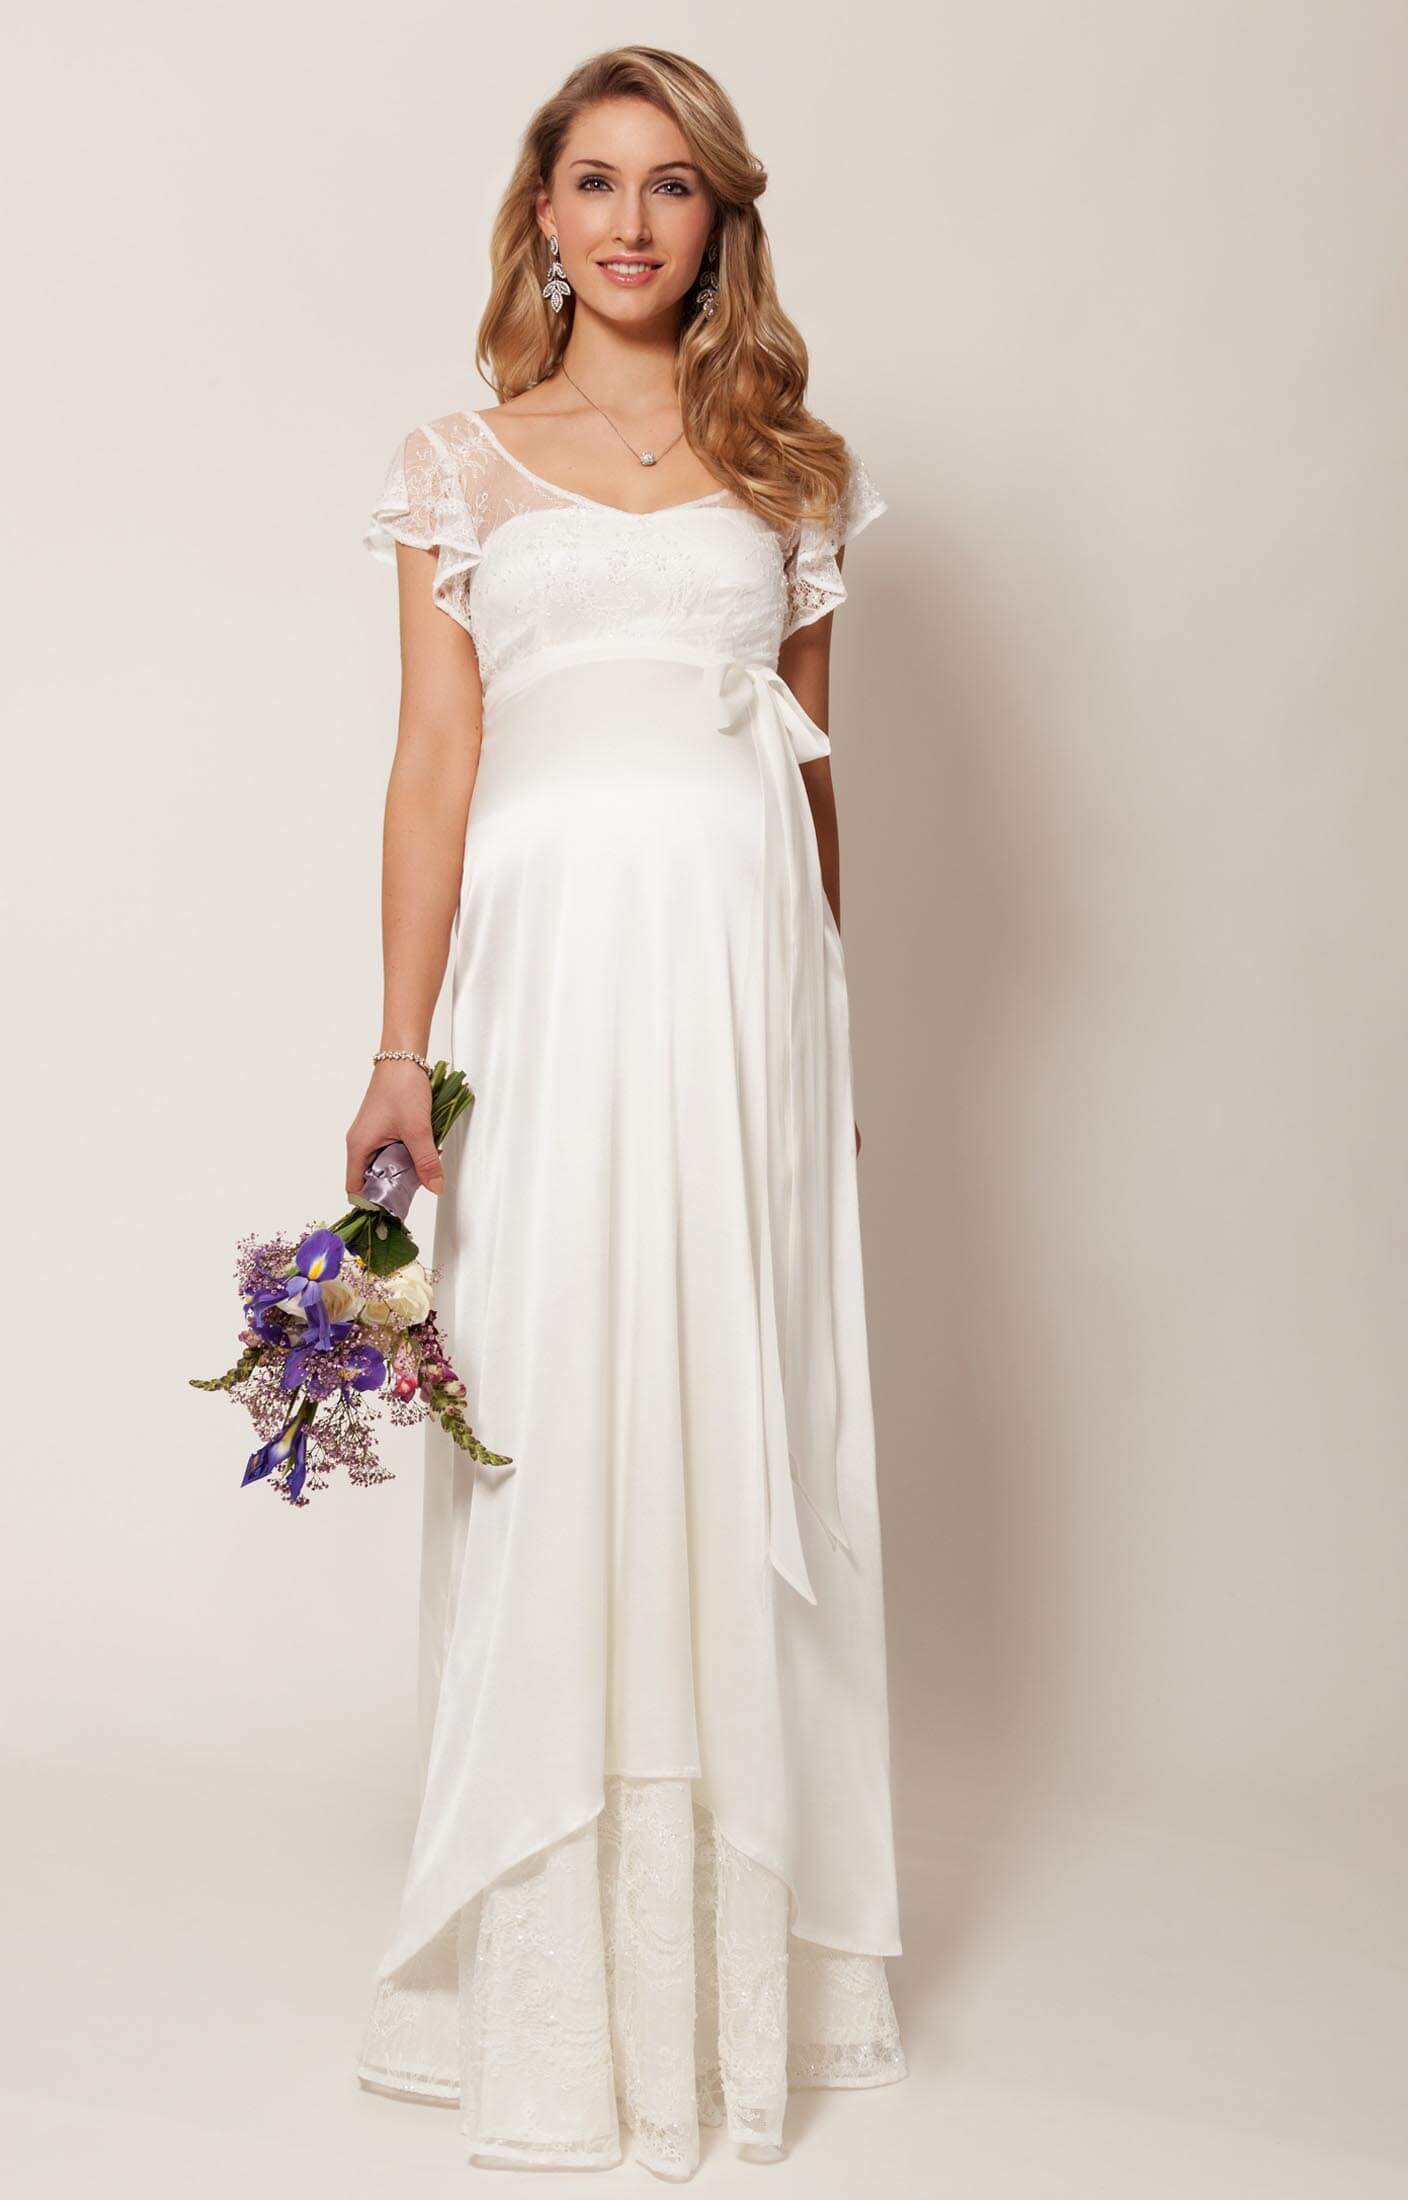 Juliette Maternity Wedding Gown (Ivory) - Maternity Wedding Dresses ...